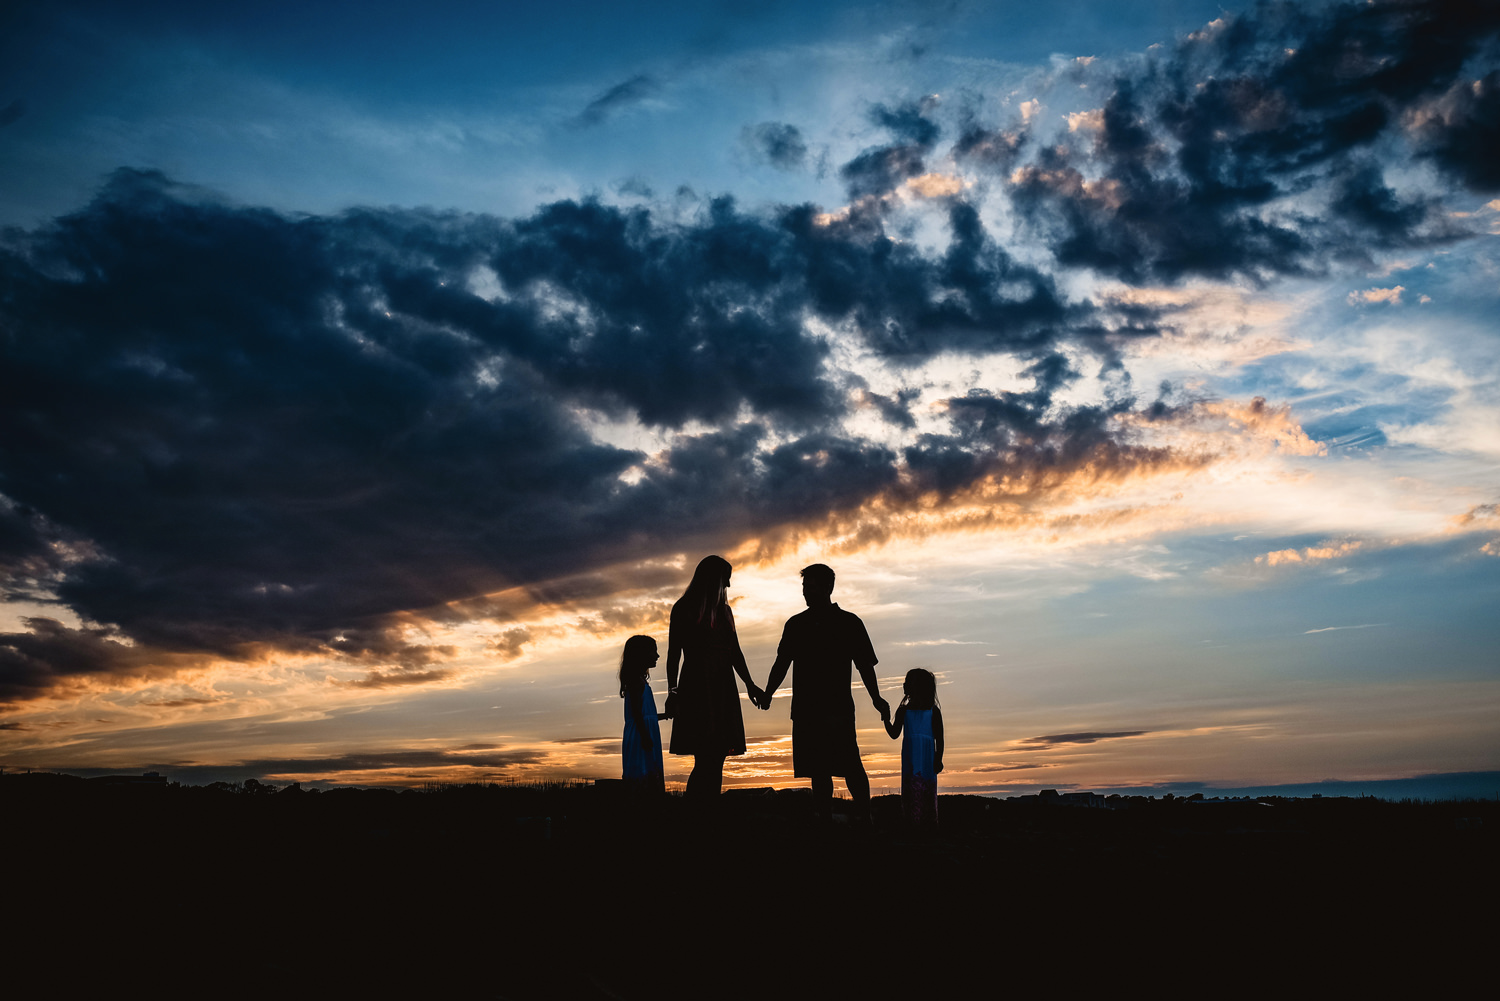 sunset-family-silhouette-on-the-beach-virginia-beach-photographer-melissa-bliss-photography.jpg